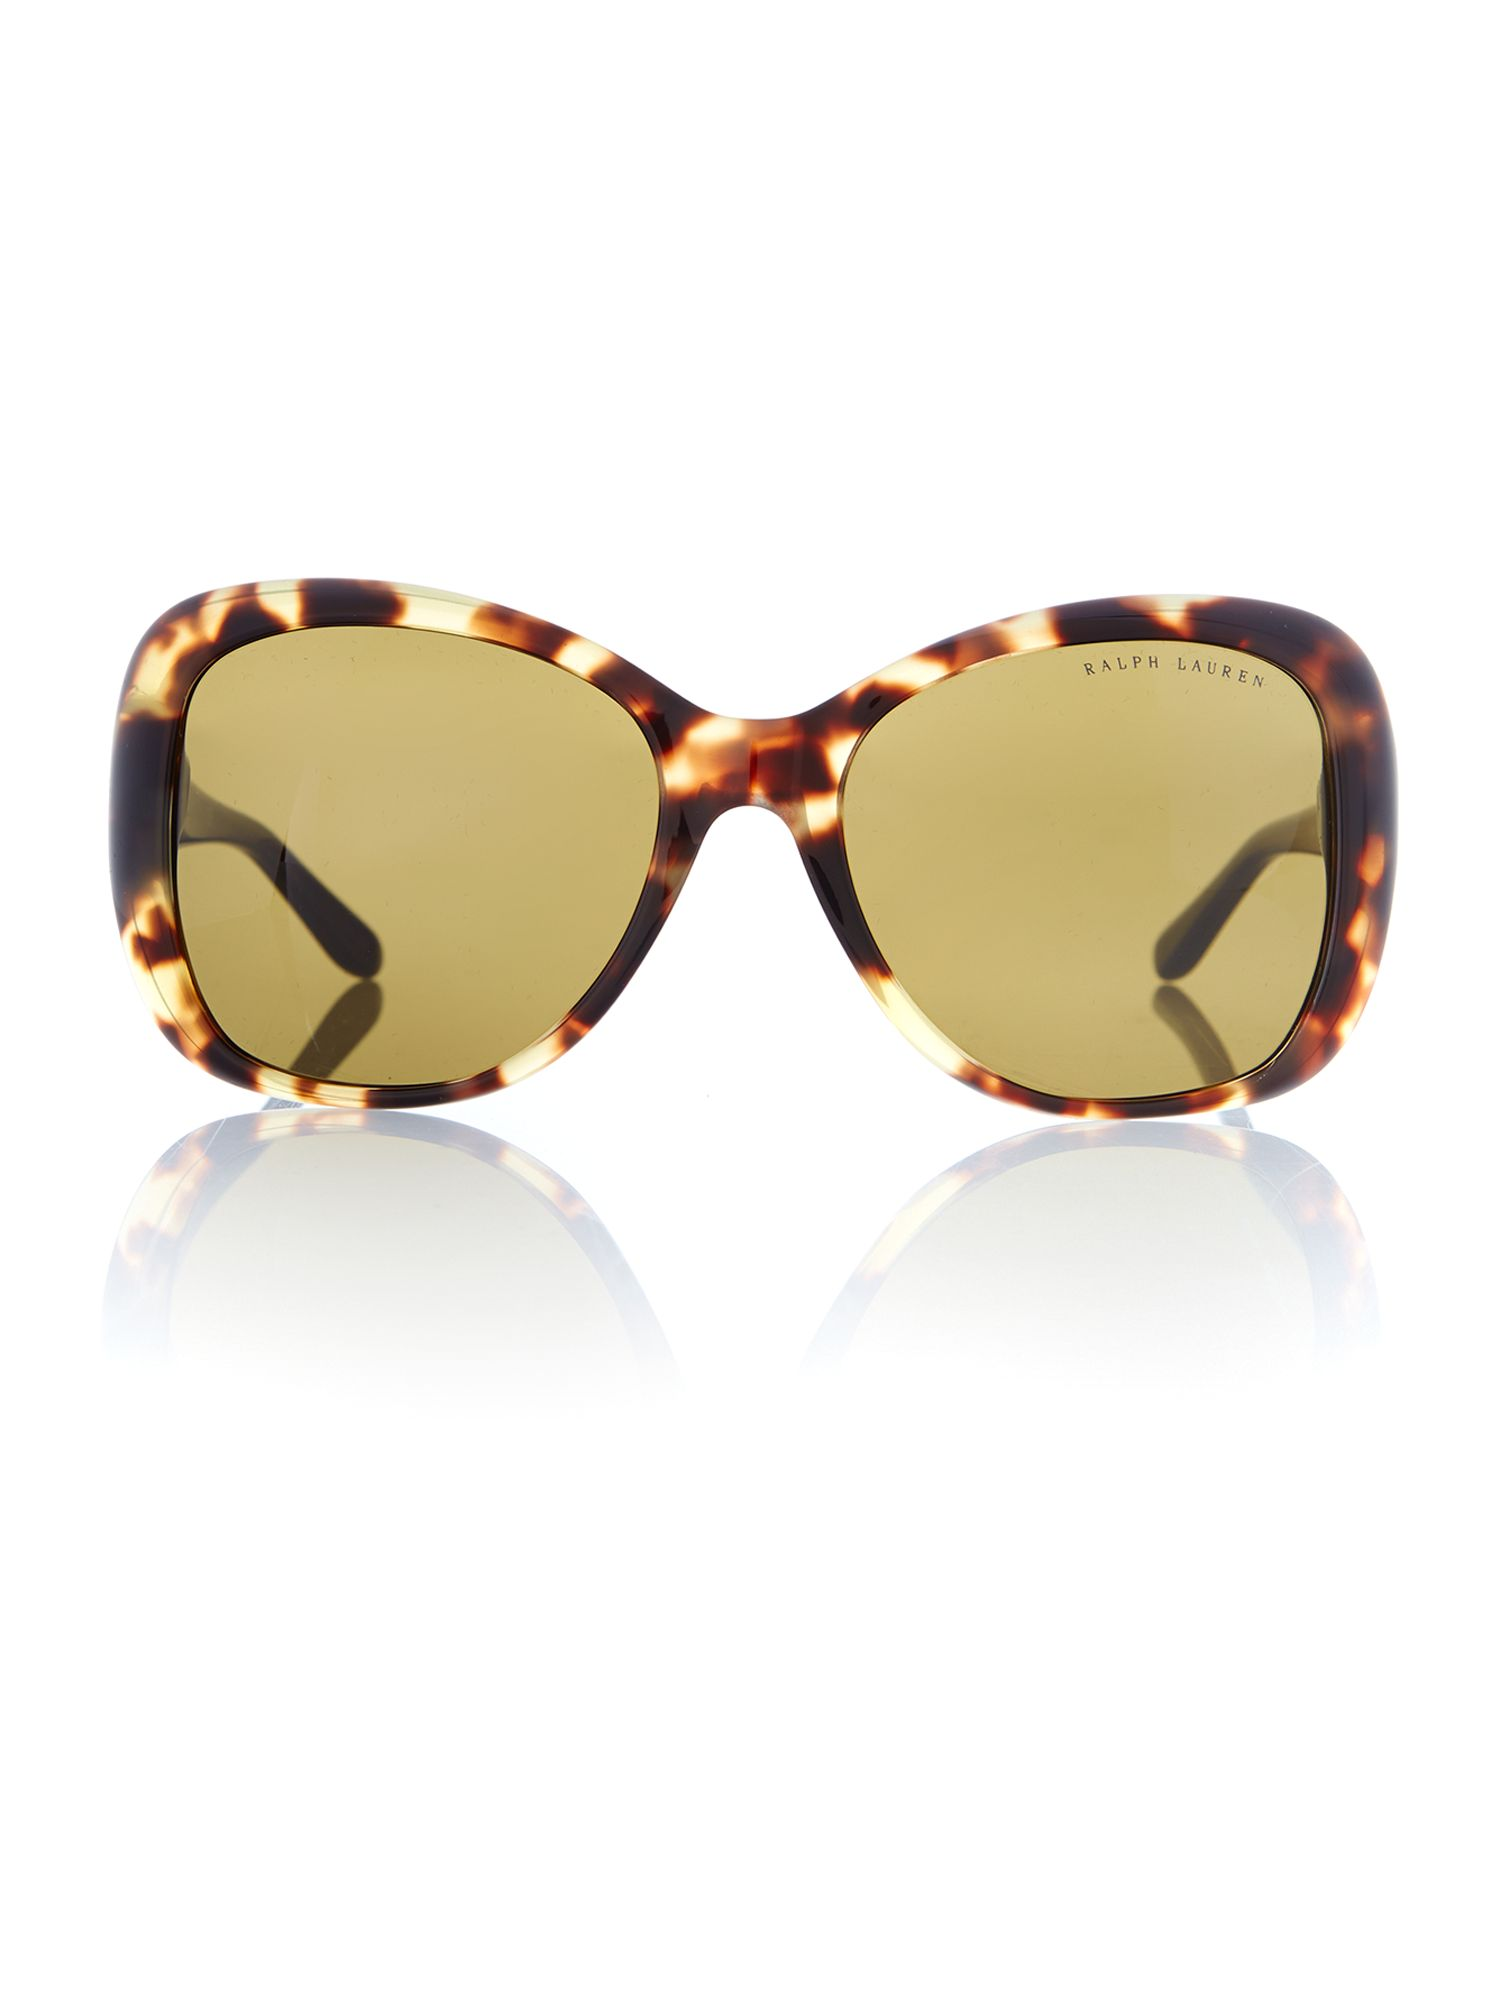 Spotty Tortoise Sunglasses